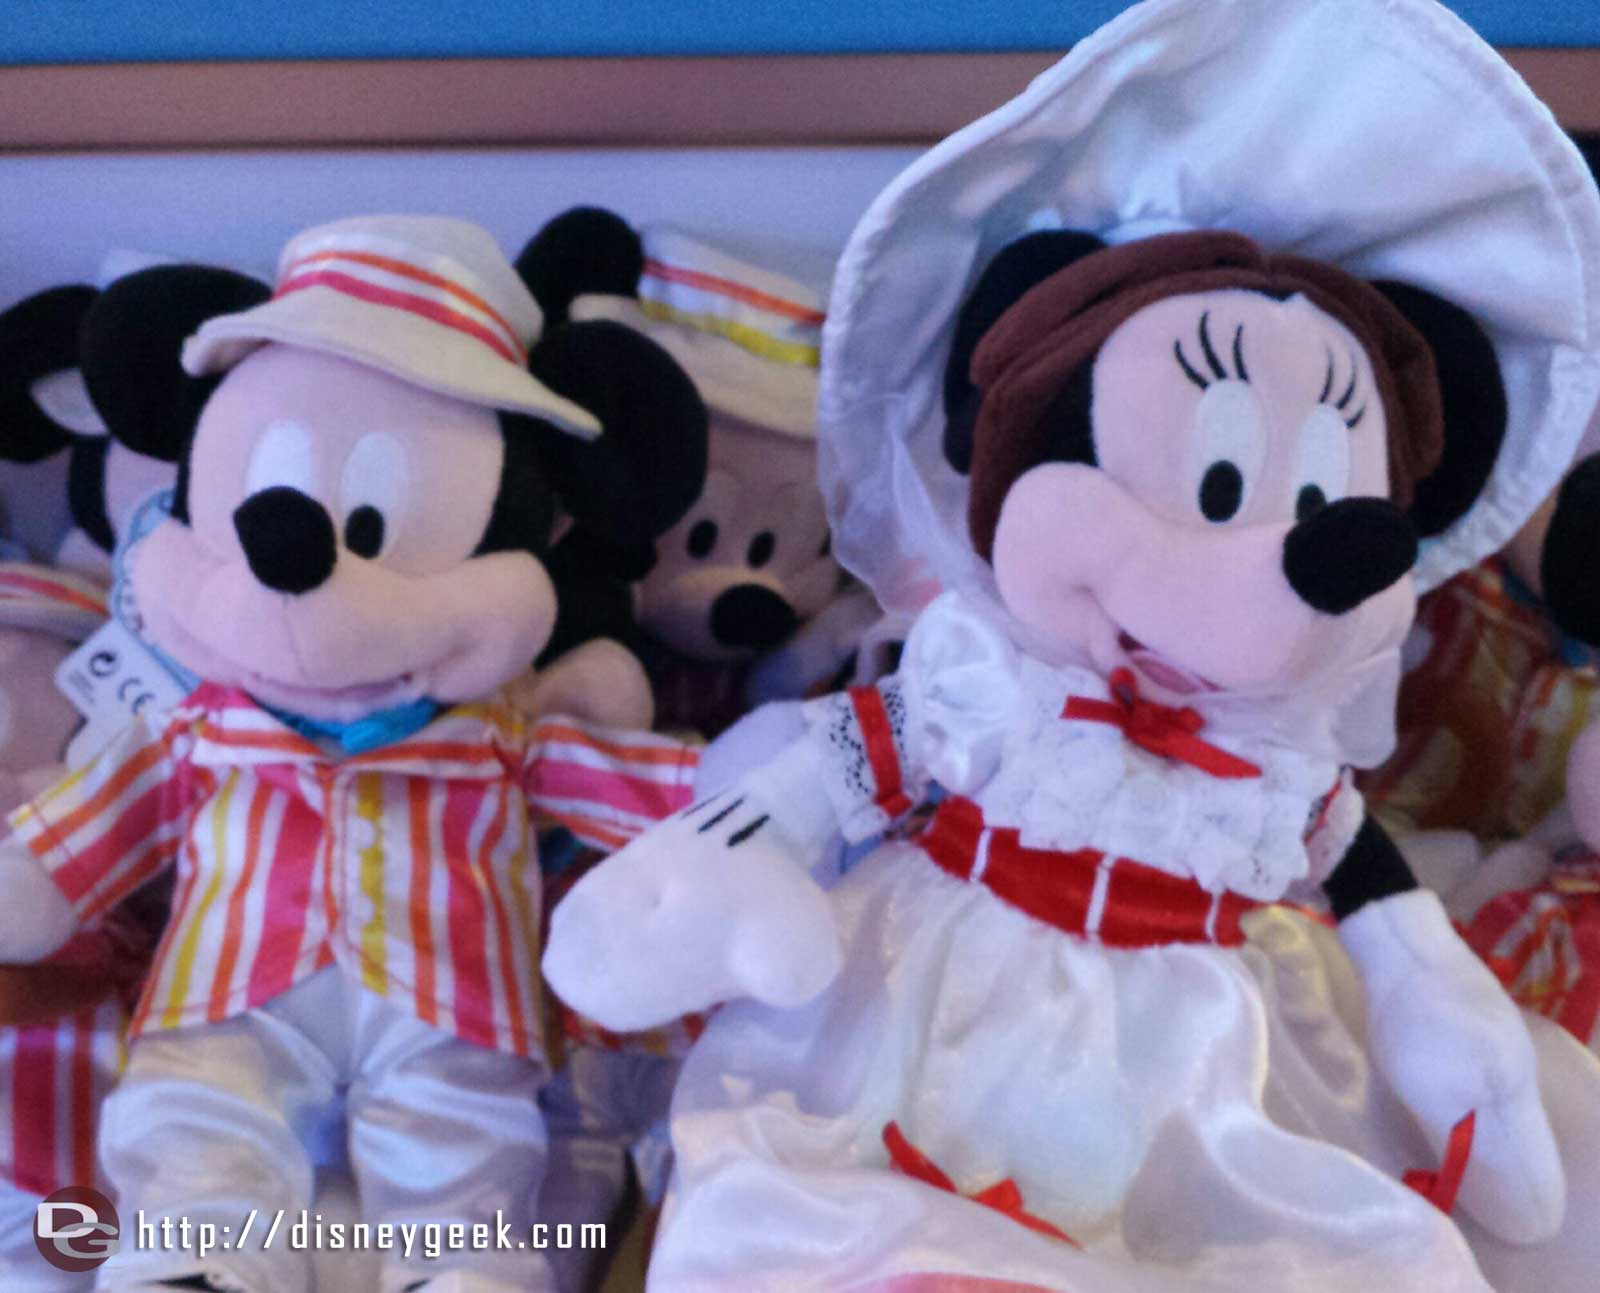 Mickey and Minnie as Bert & Mary Poppins, 50th anniversary plush